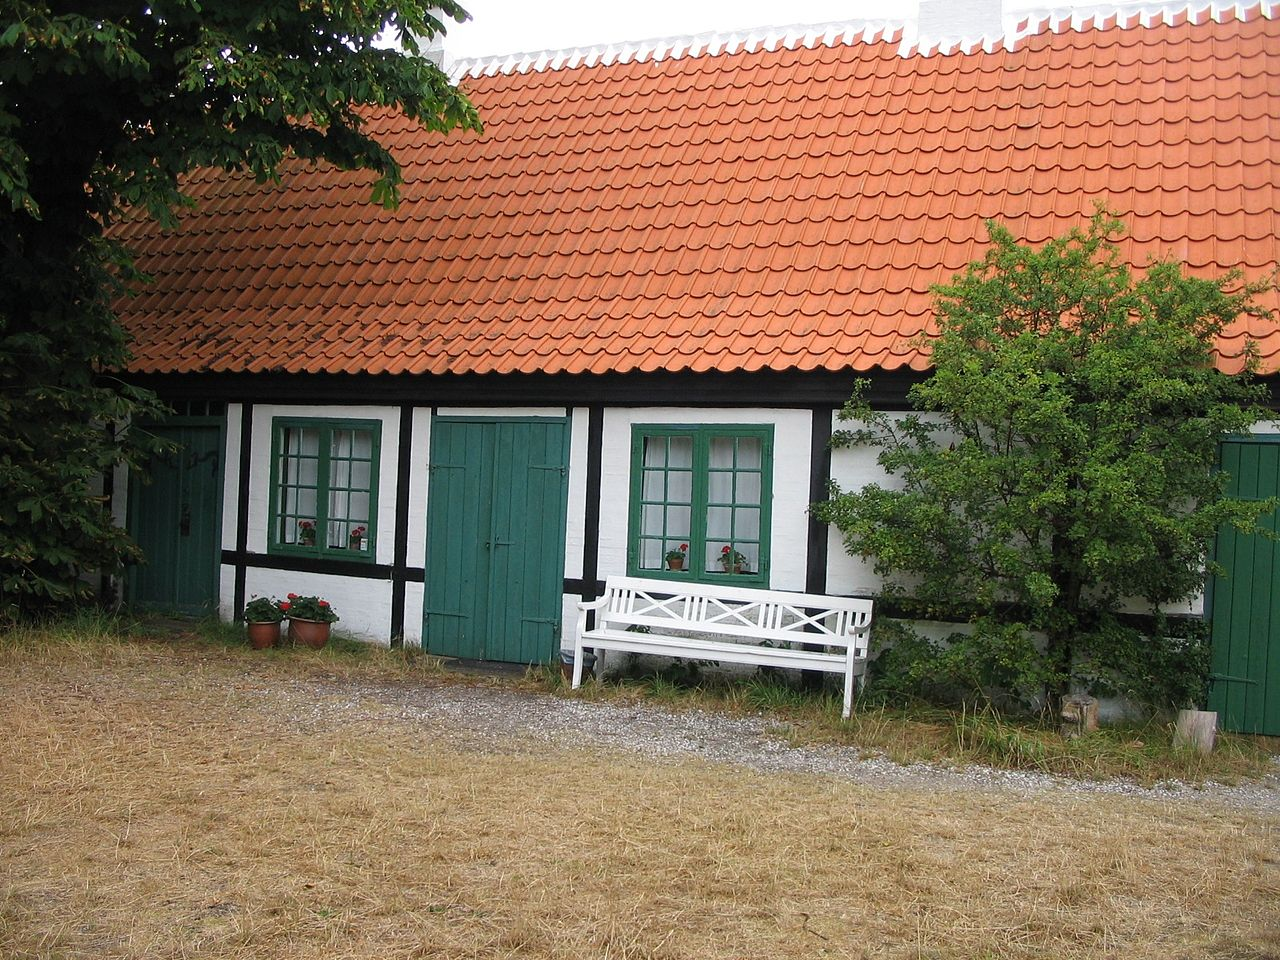 Drachmann's House - Places to See when in Skagen, Denmark